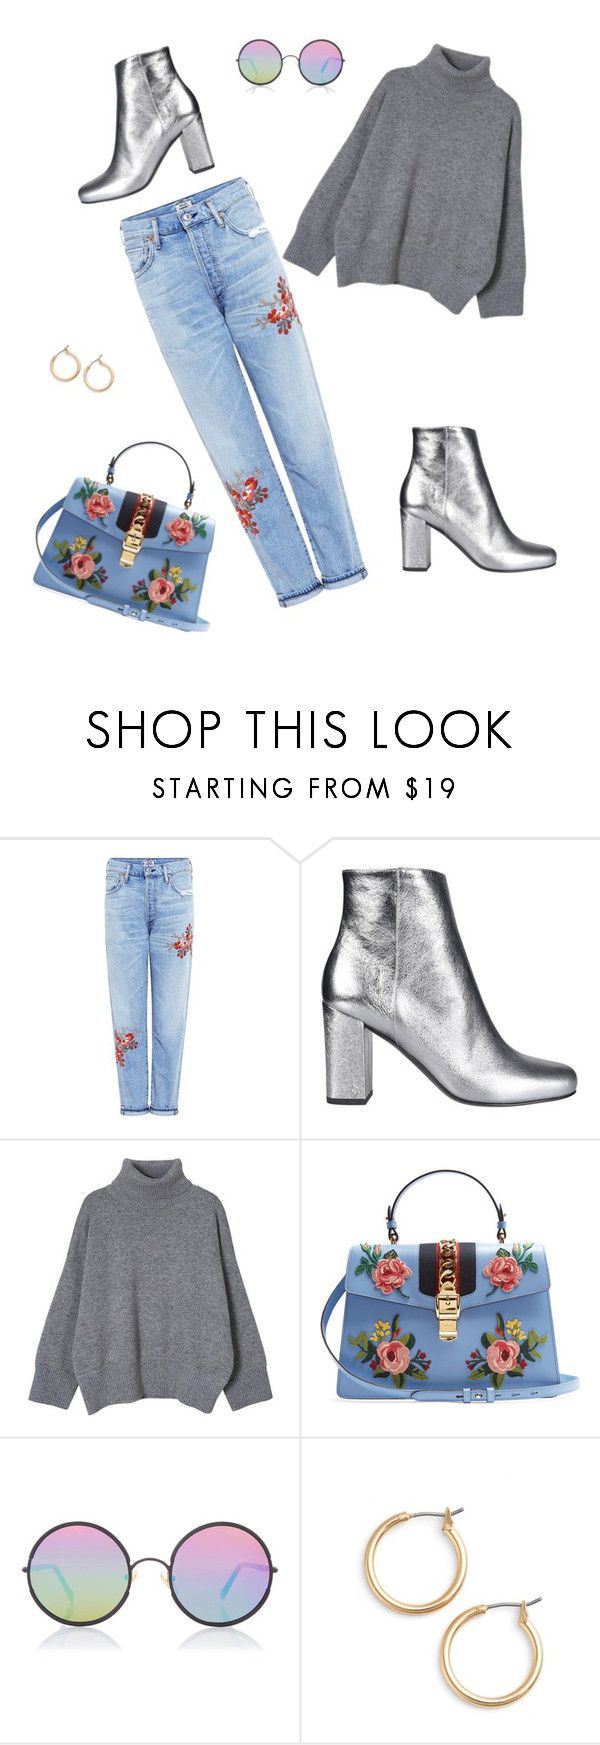 """2017.2.25"" by joe-khulan on Polyvore featuring Citizens of Humanity, Yves Saint Laurent, Gucci, Sunday Somewhere and Nordstrom"